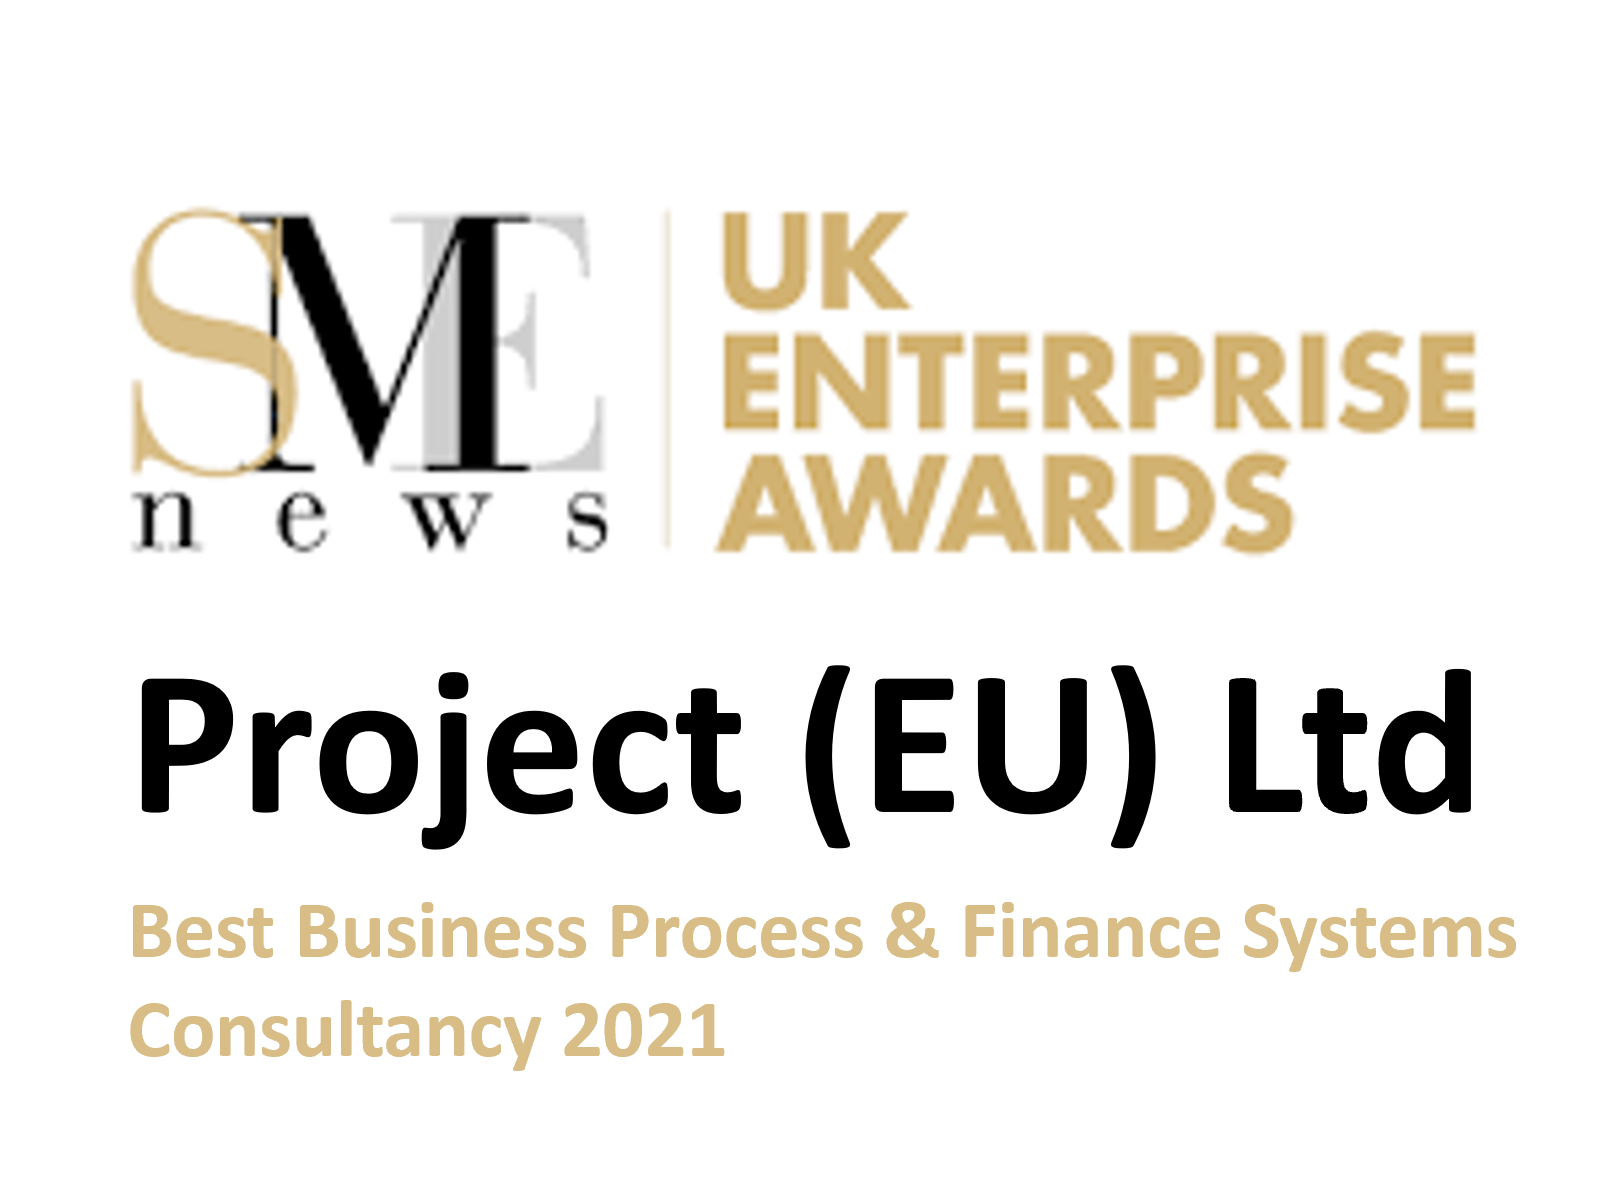 Best Business Process & Finance Systems Consultancy of the Year